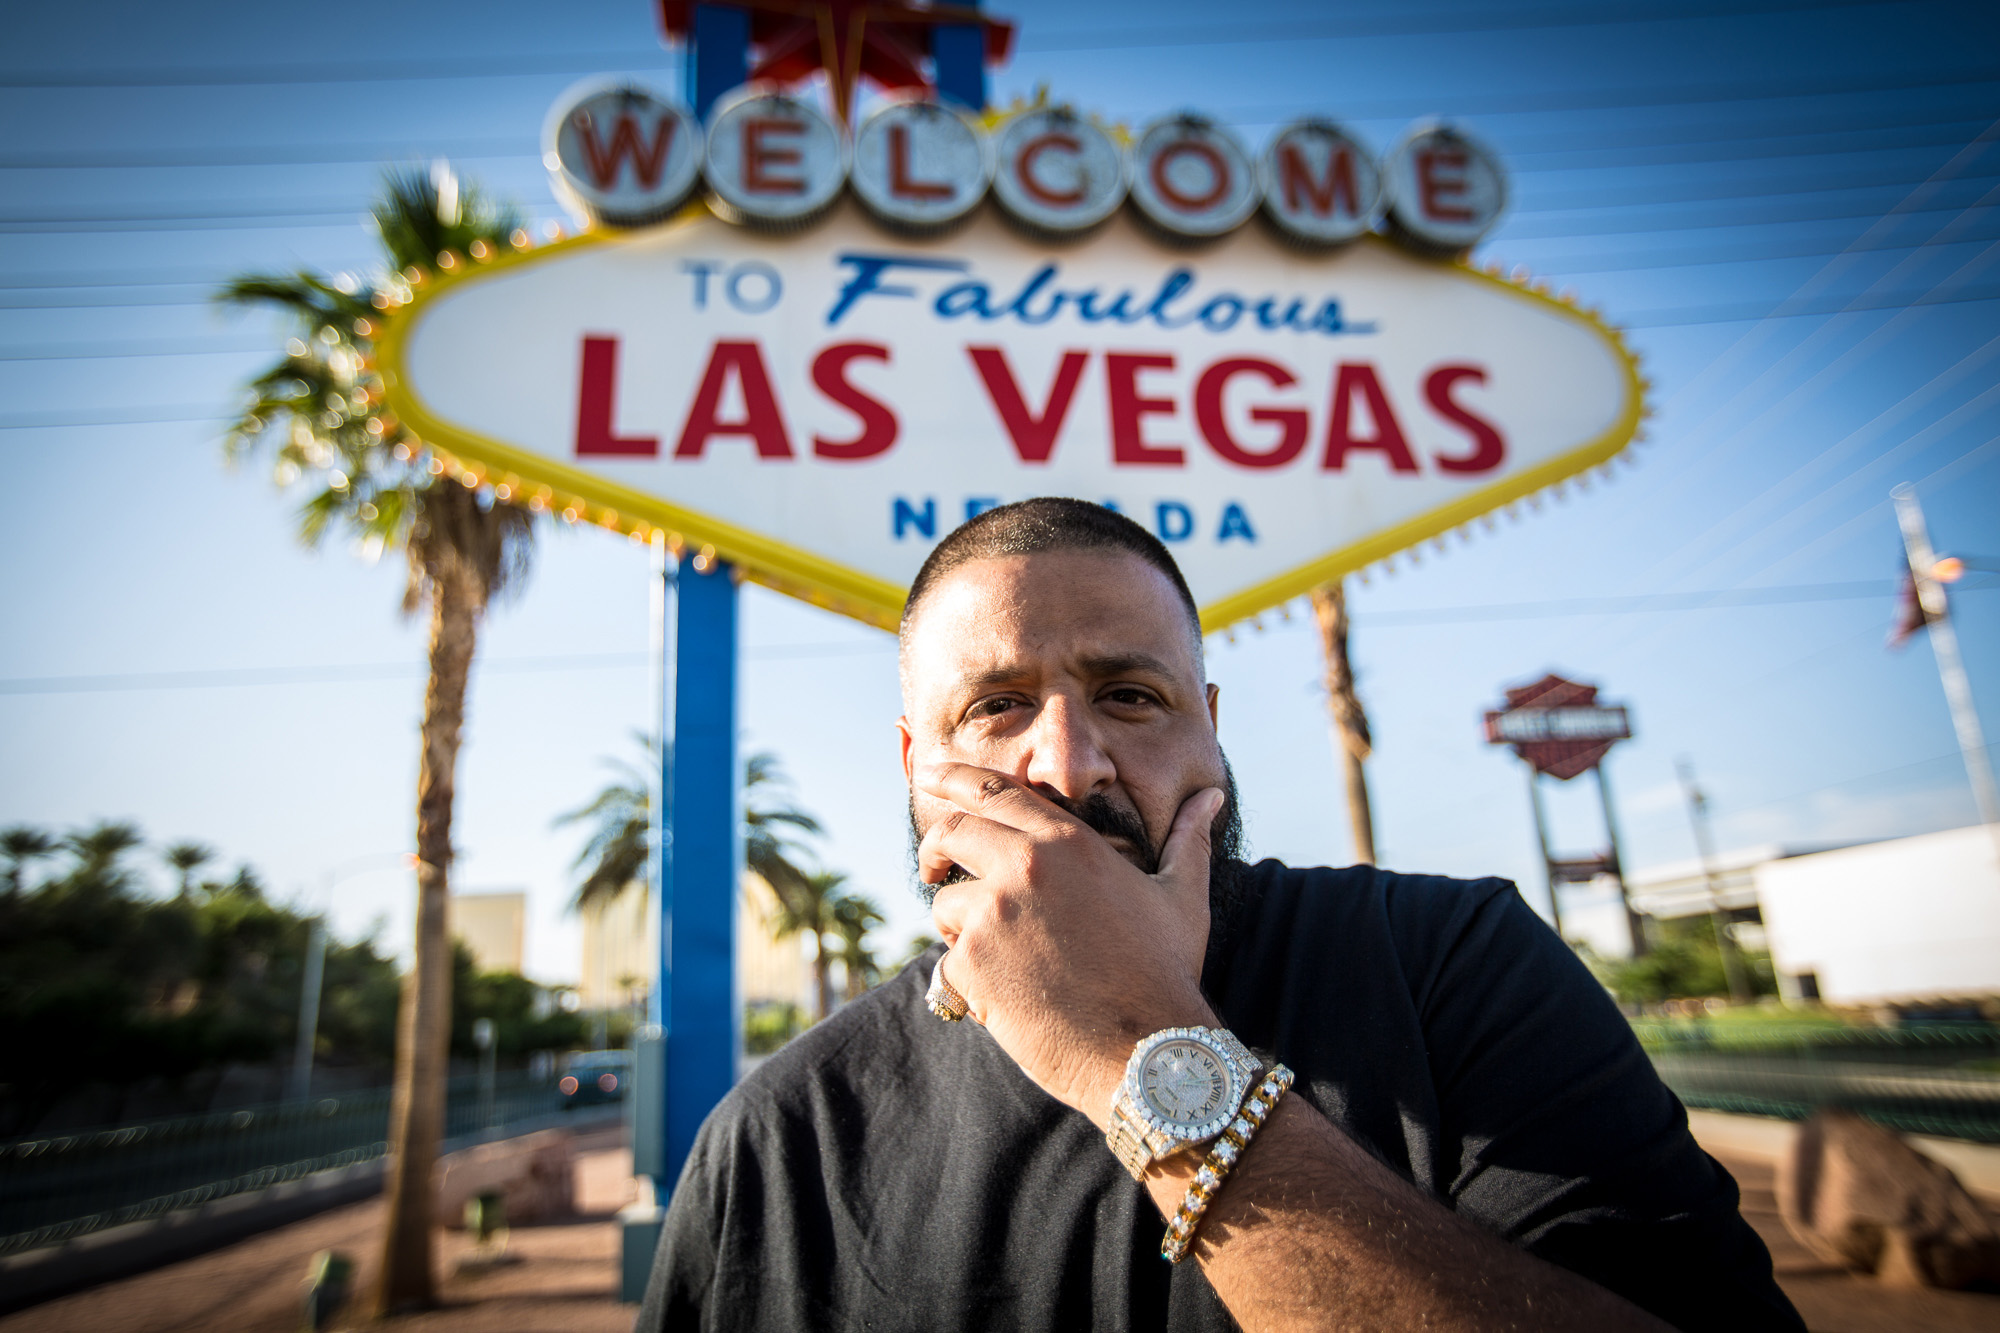 dj-khaled-launches-official-las-vegas-snapchat-16-HR